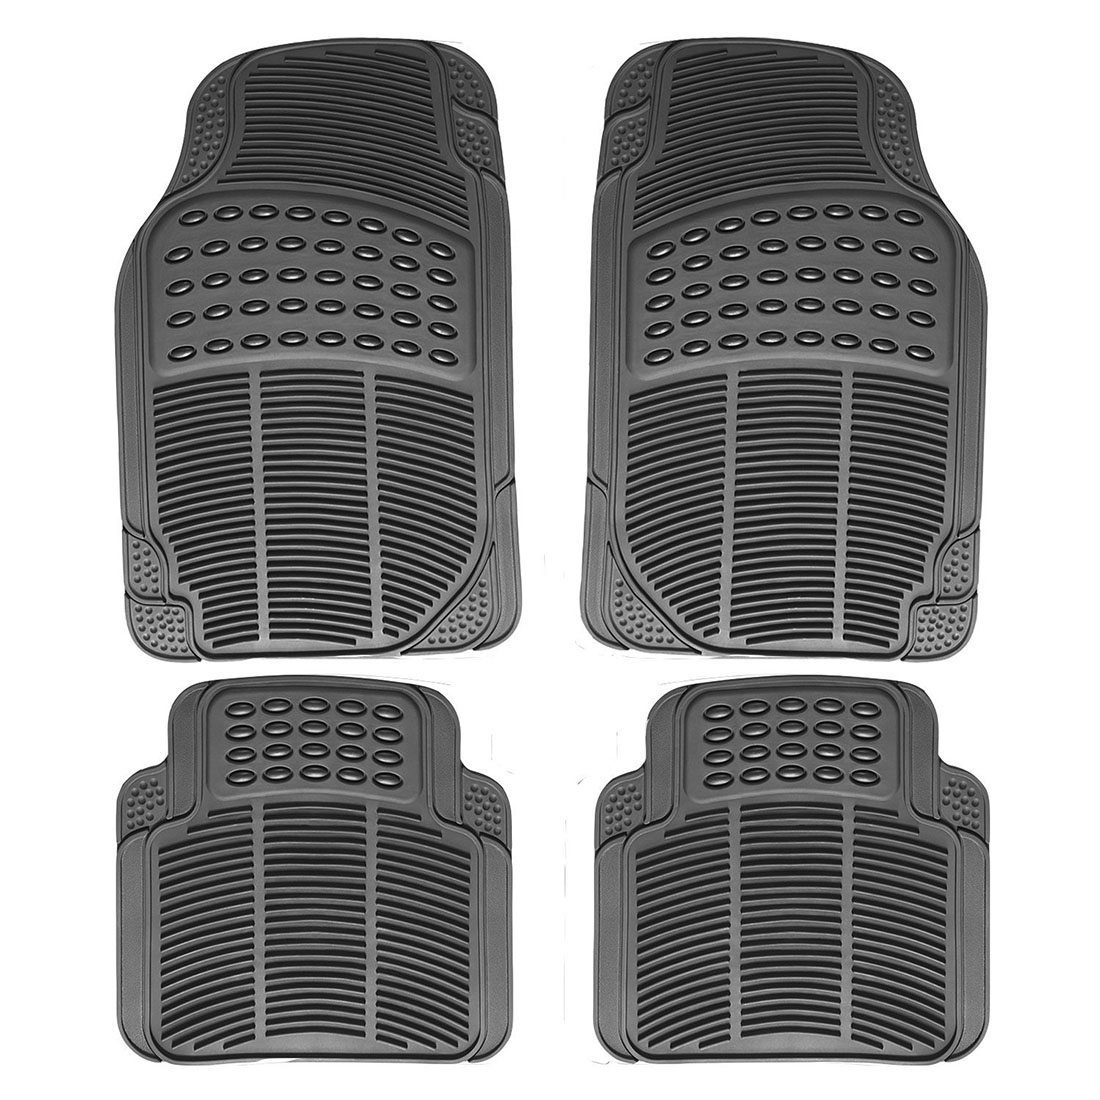 Rubber floor mats kia sorento - Multi Season Rubber Floor Mats 4pc Set Black Fit Most Cars Suvs Vans And